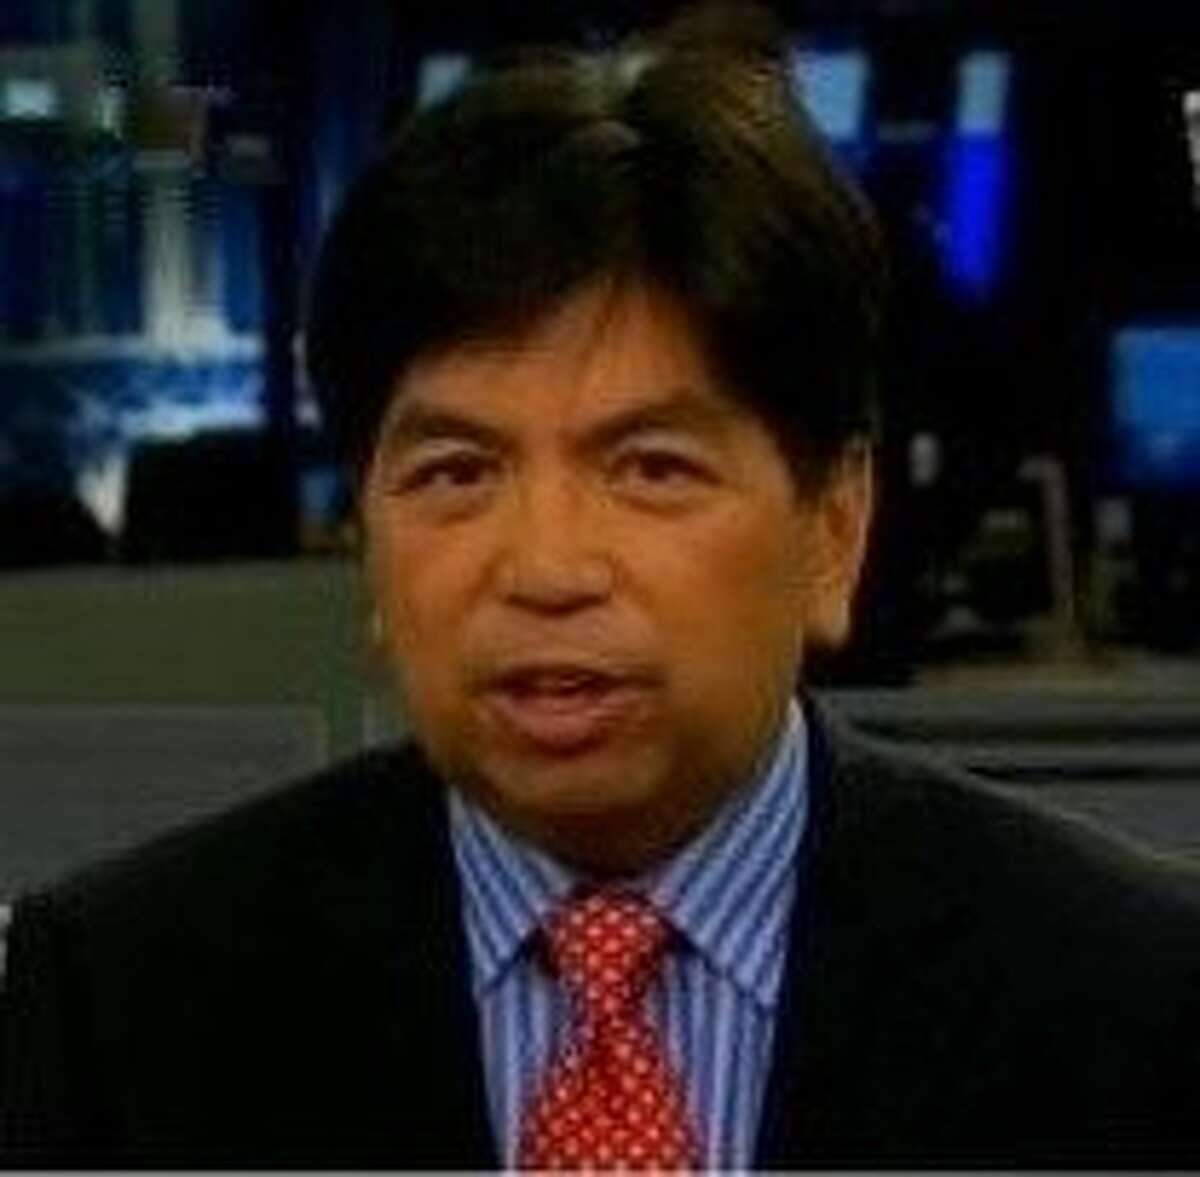 Michael Yaki is a former San Francisco Supervisor who is now a member of the U.S. Commission on Civil Rights.